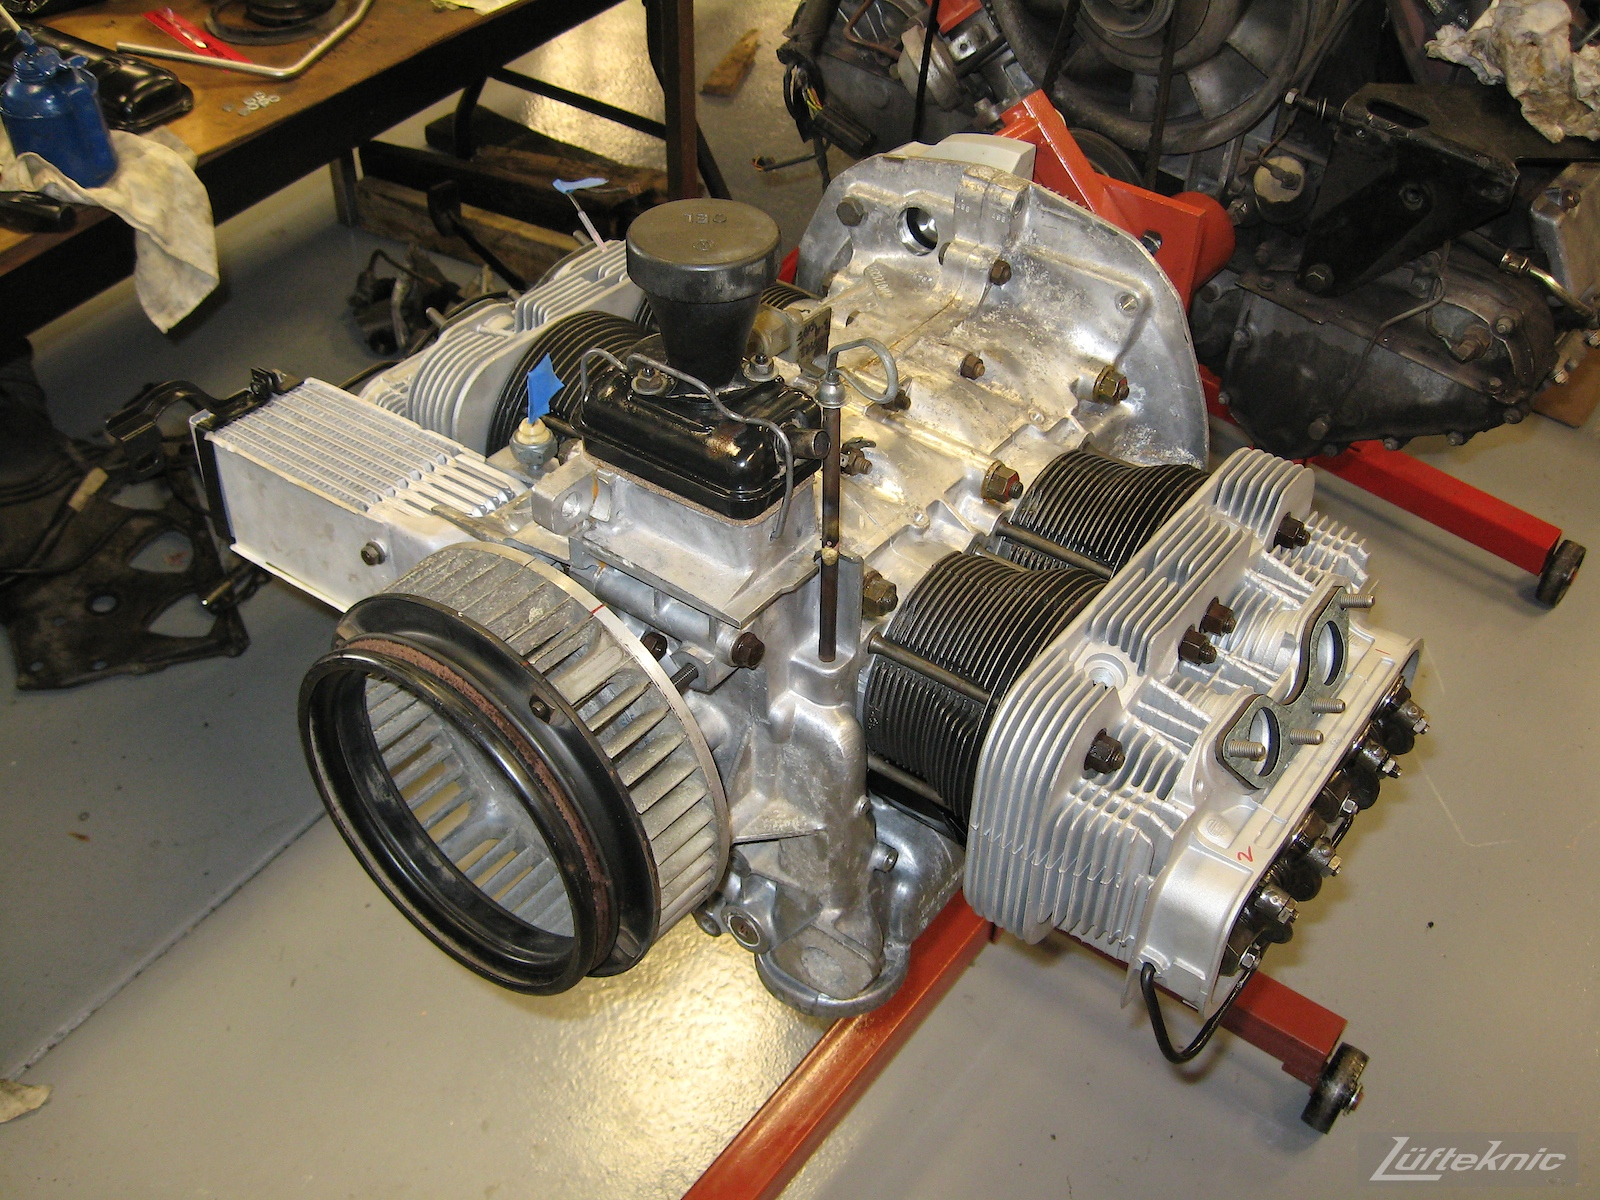 Nearly complete engine for a restored yellow Porsche 914 at Lufteknic.